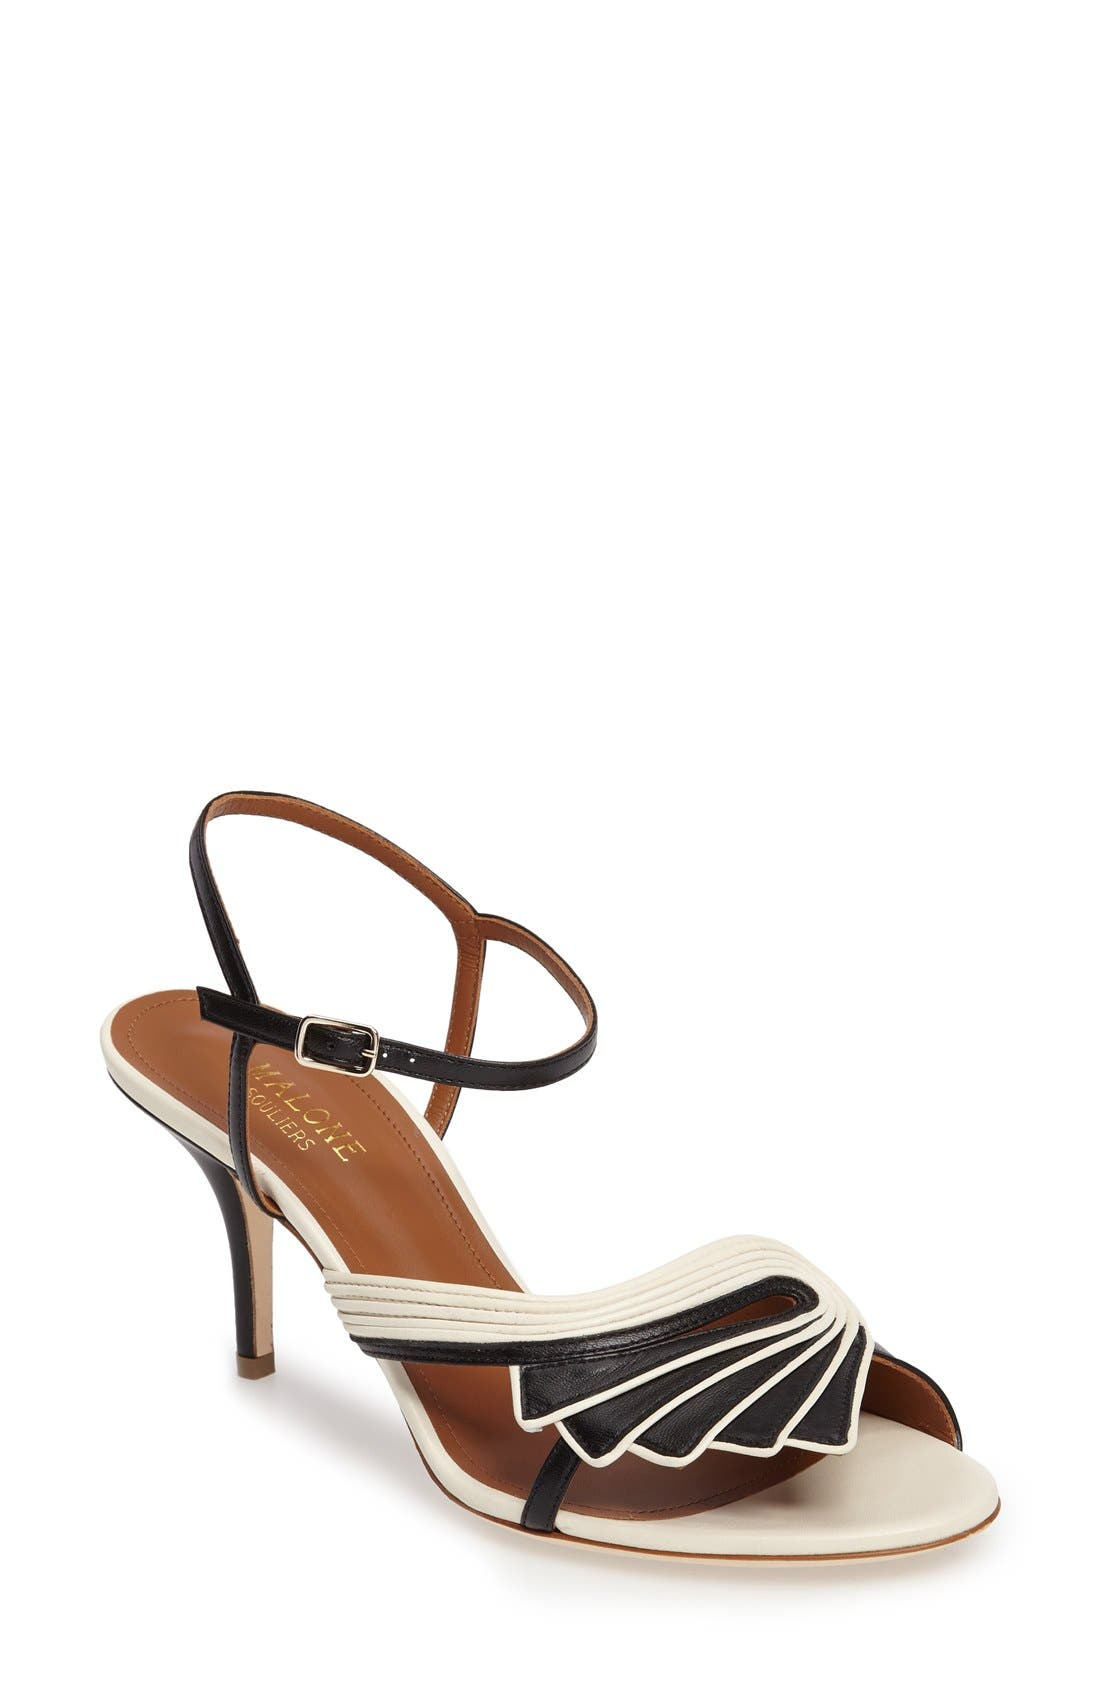 MALONE SOULIERS Ankle Strap Sandal